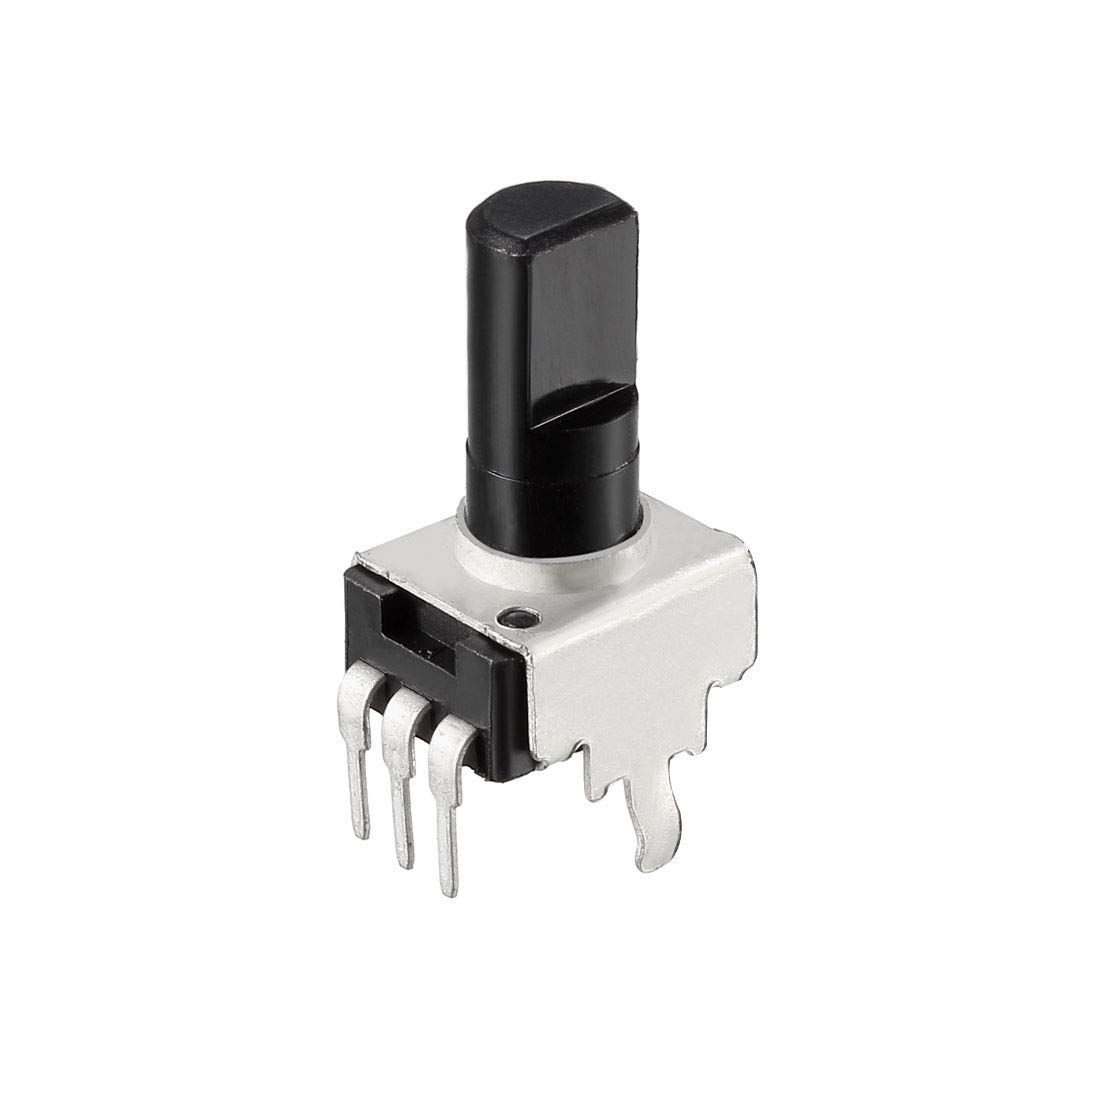 uxcell Carbon Film Potentiometer OFFicial store 100K 25% OFF Resistors Variable Ohm Si